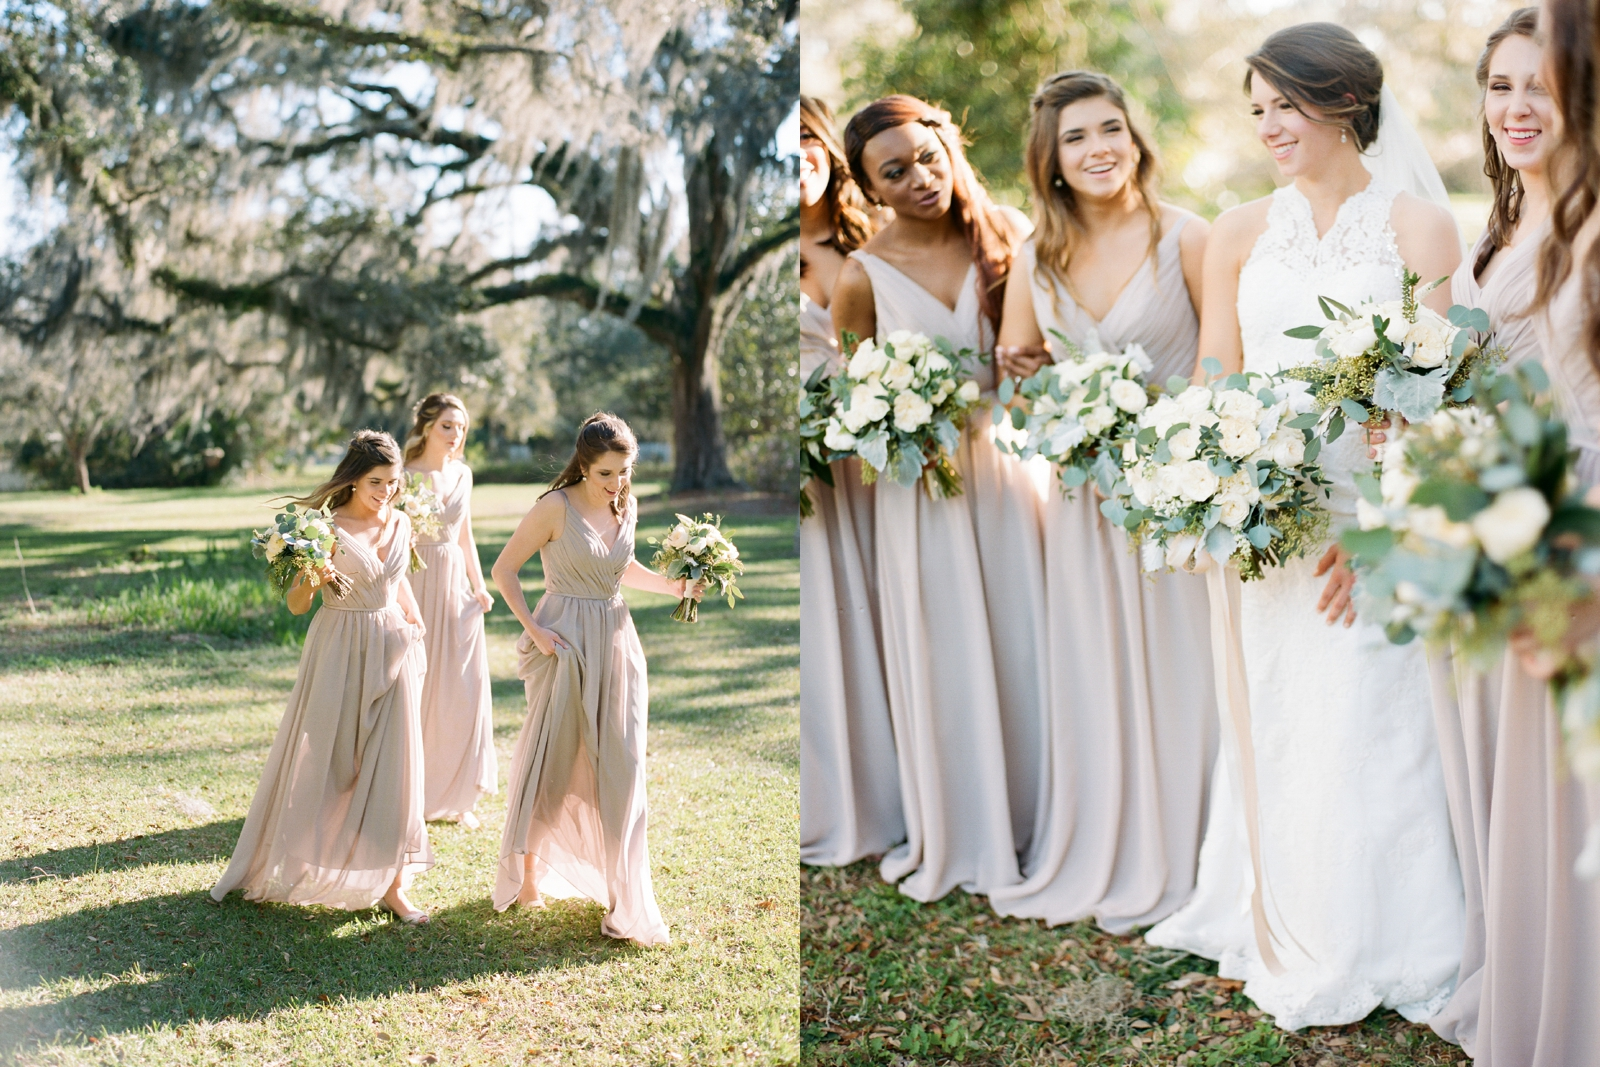 goodwood museum tallahassee wedding photographer - tallahassee florida - shannon griffin_0059.jpg